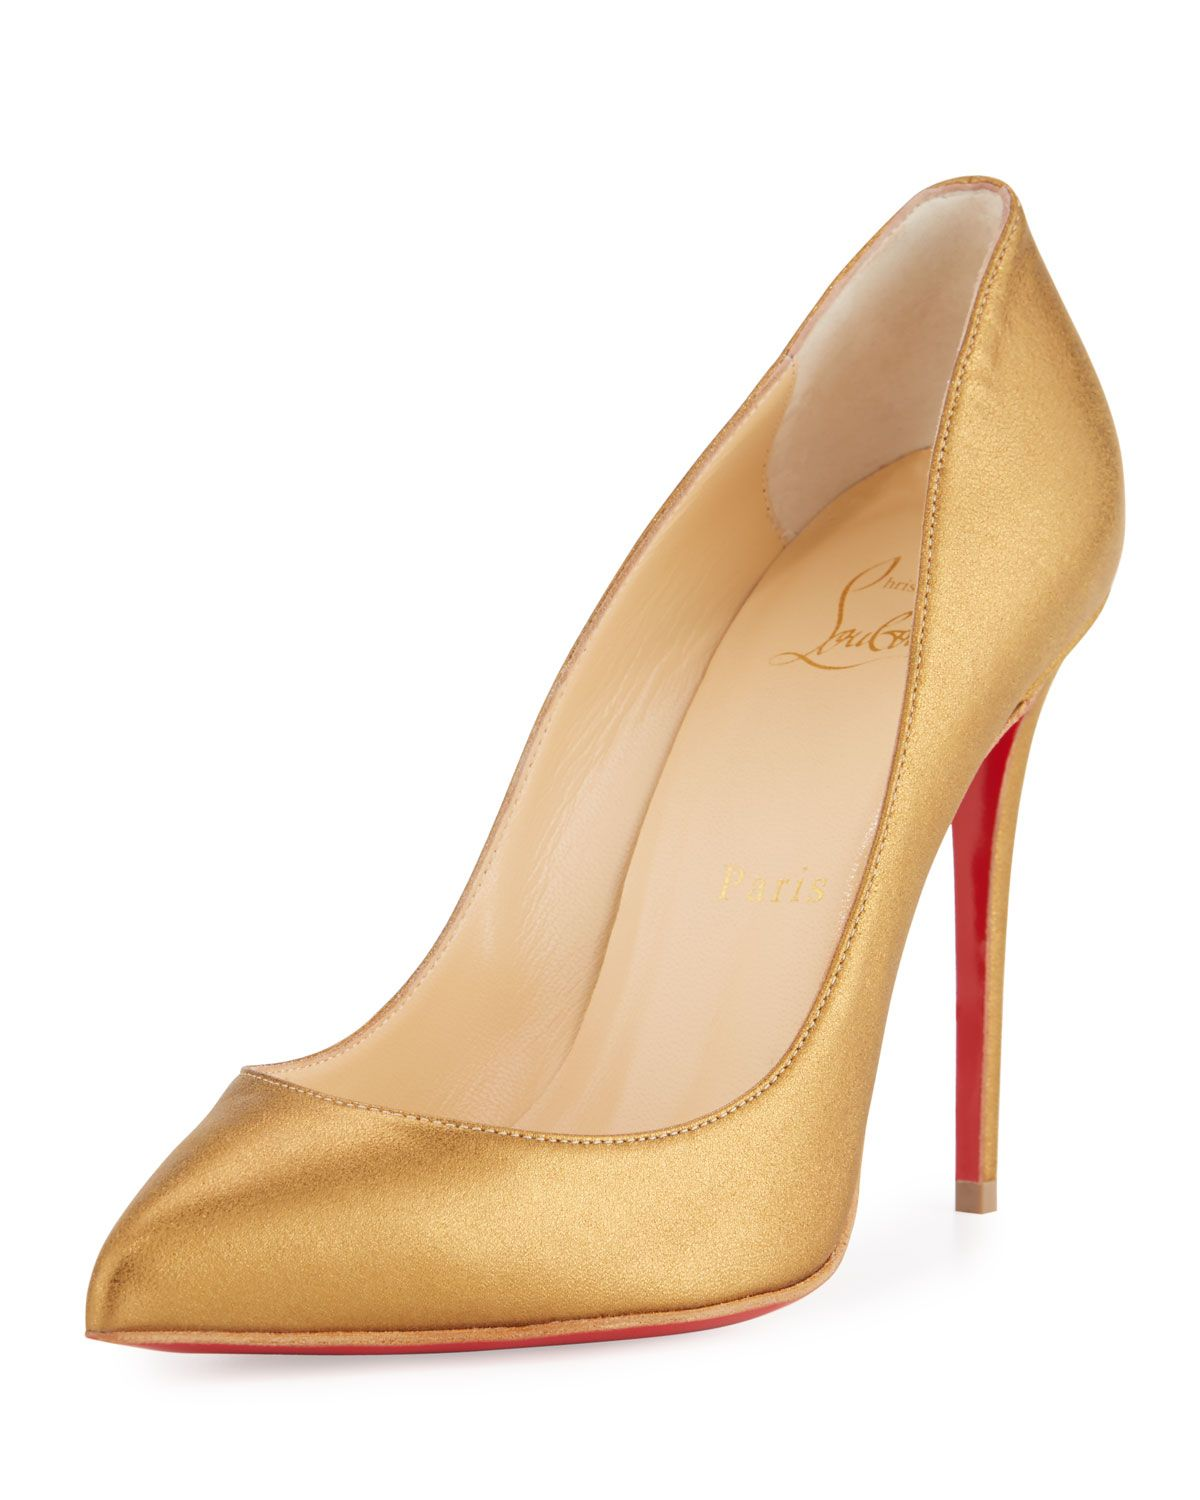 ba1943b0c7b Christian Louboutin Pigalle Follies Leather 100mm Red Sole Pump ...